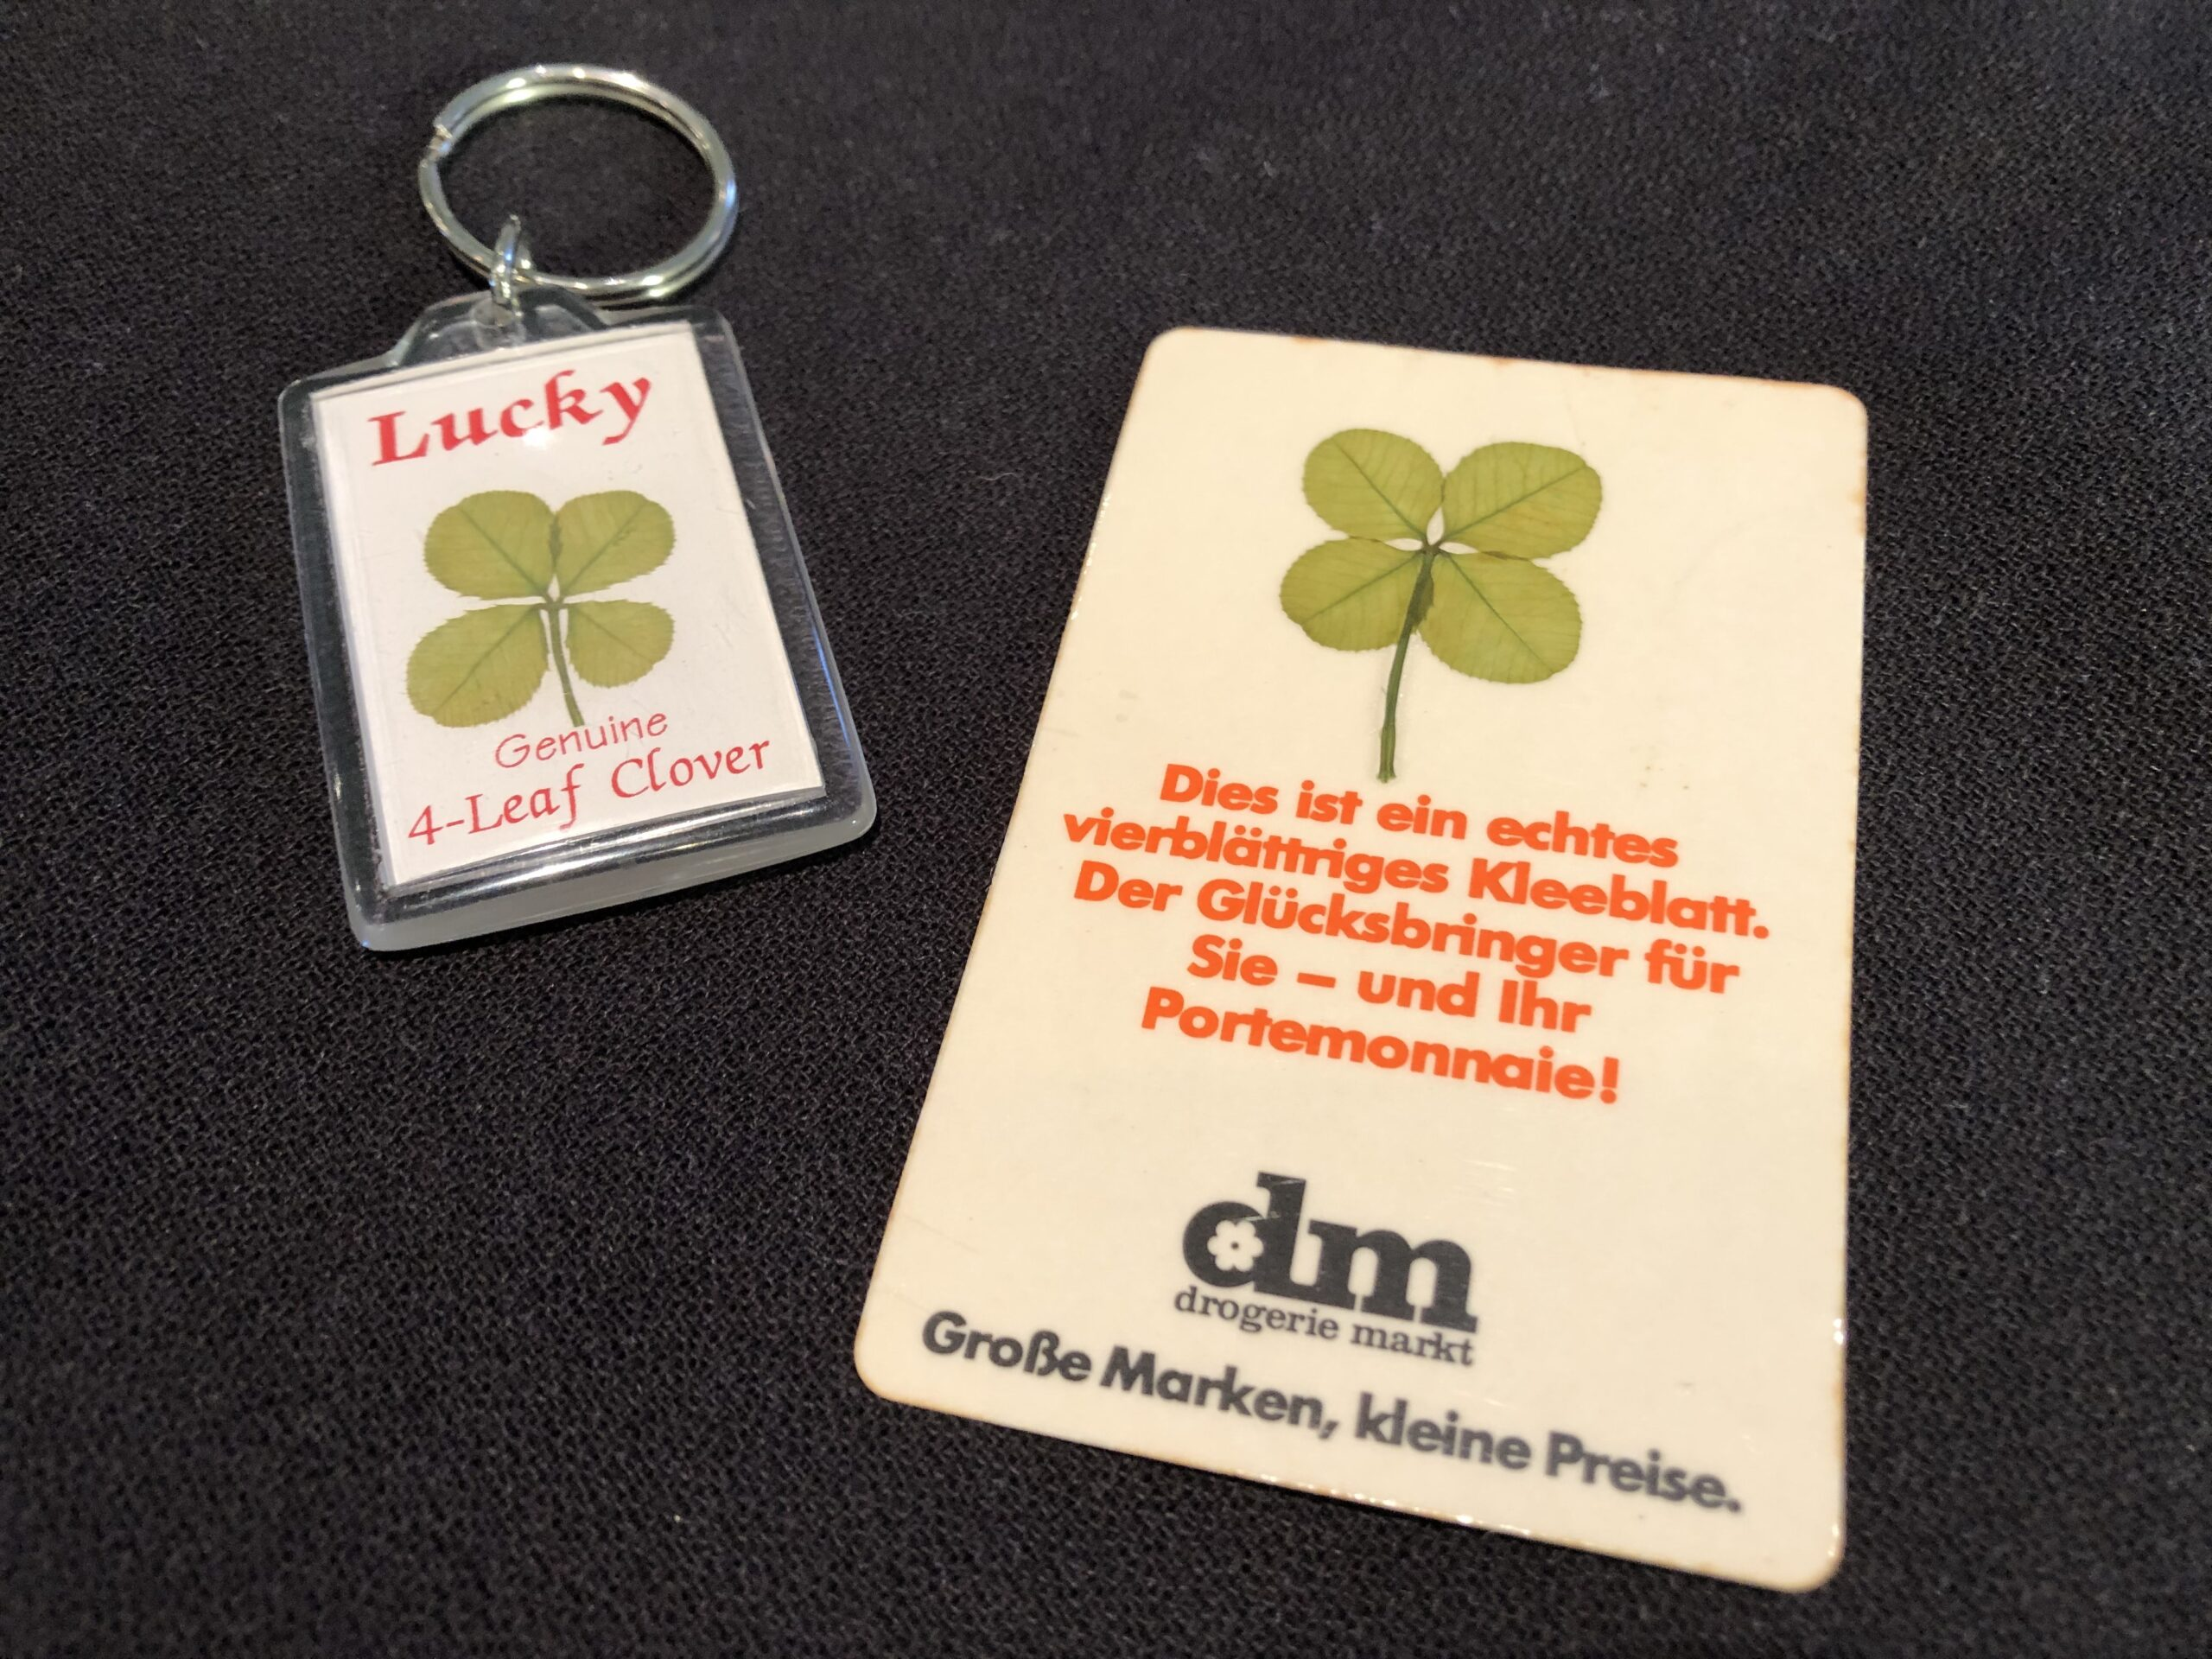 A key chain and good-luck charm with four-leaf clovers and German writing